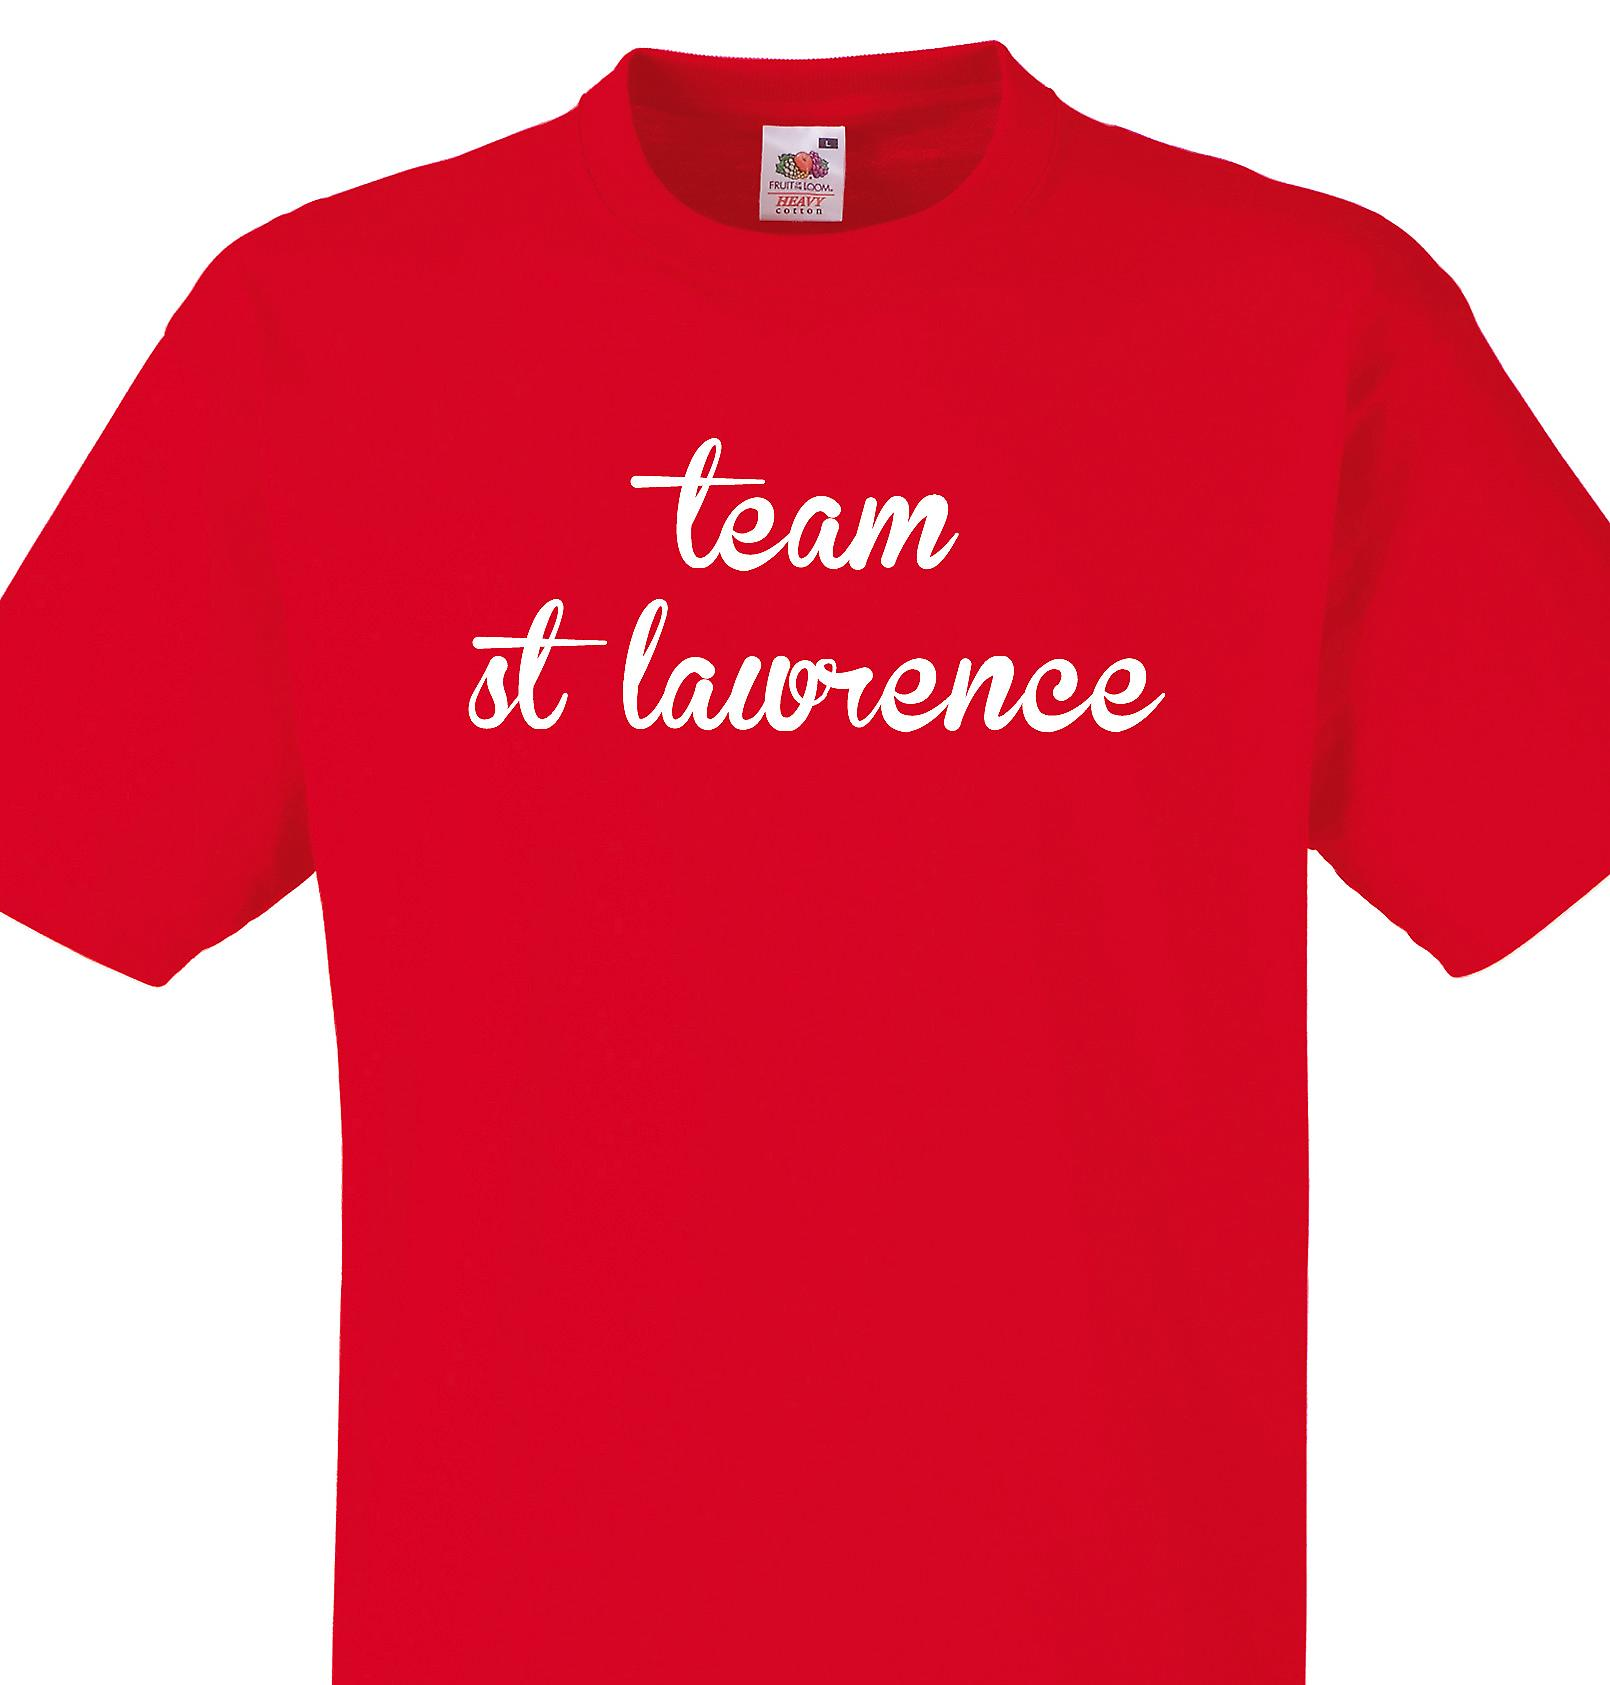 Team St lawrence Red T shirt